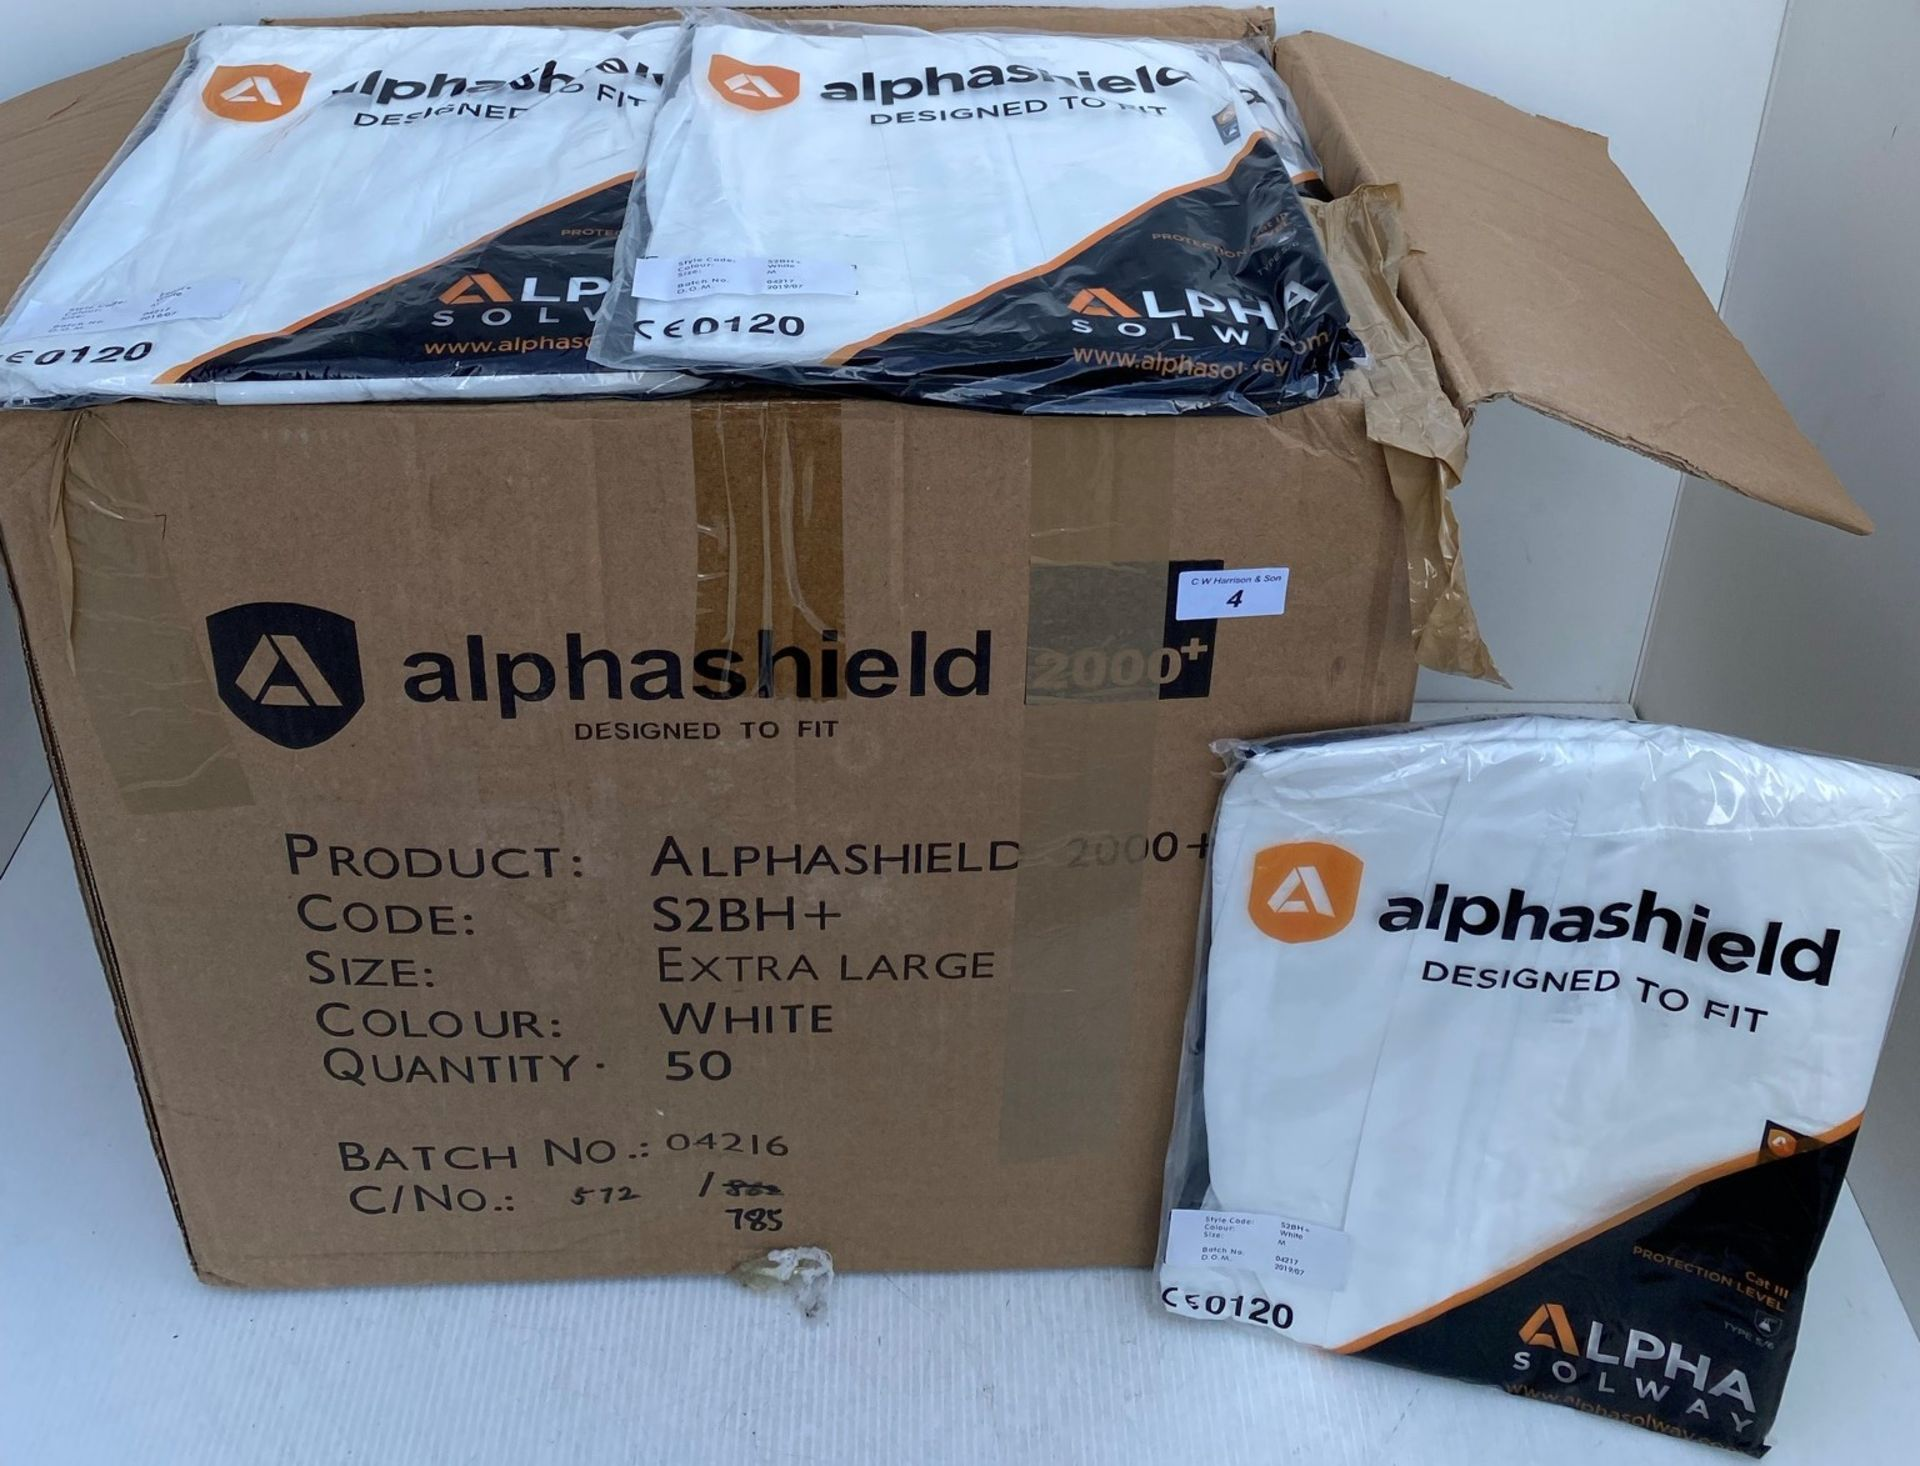 50 x Alpha Solway - Alphashield 2000+ protective S2BH+ white oversuits - Assorted sizes Medium, - Image 2 of 3